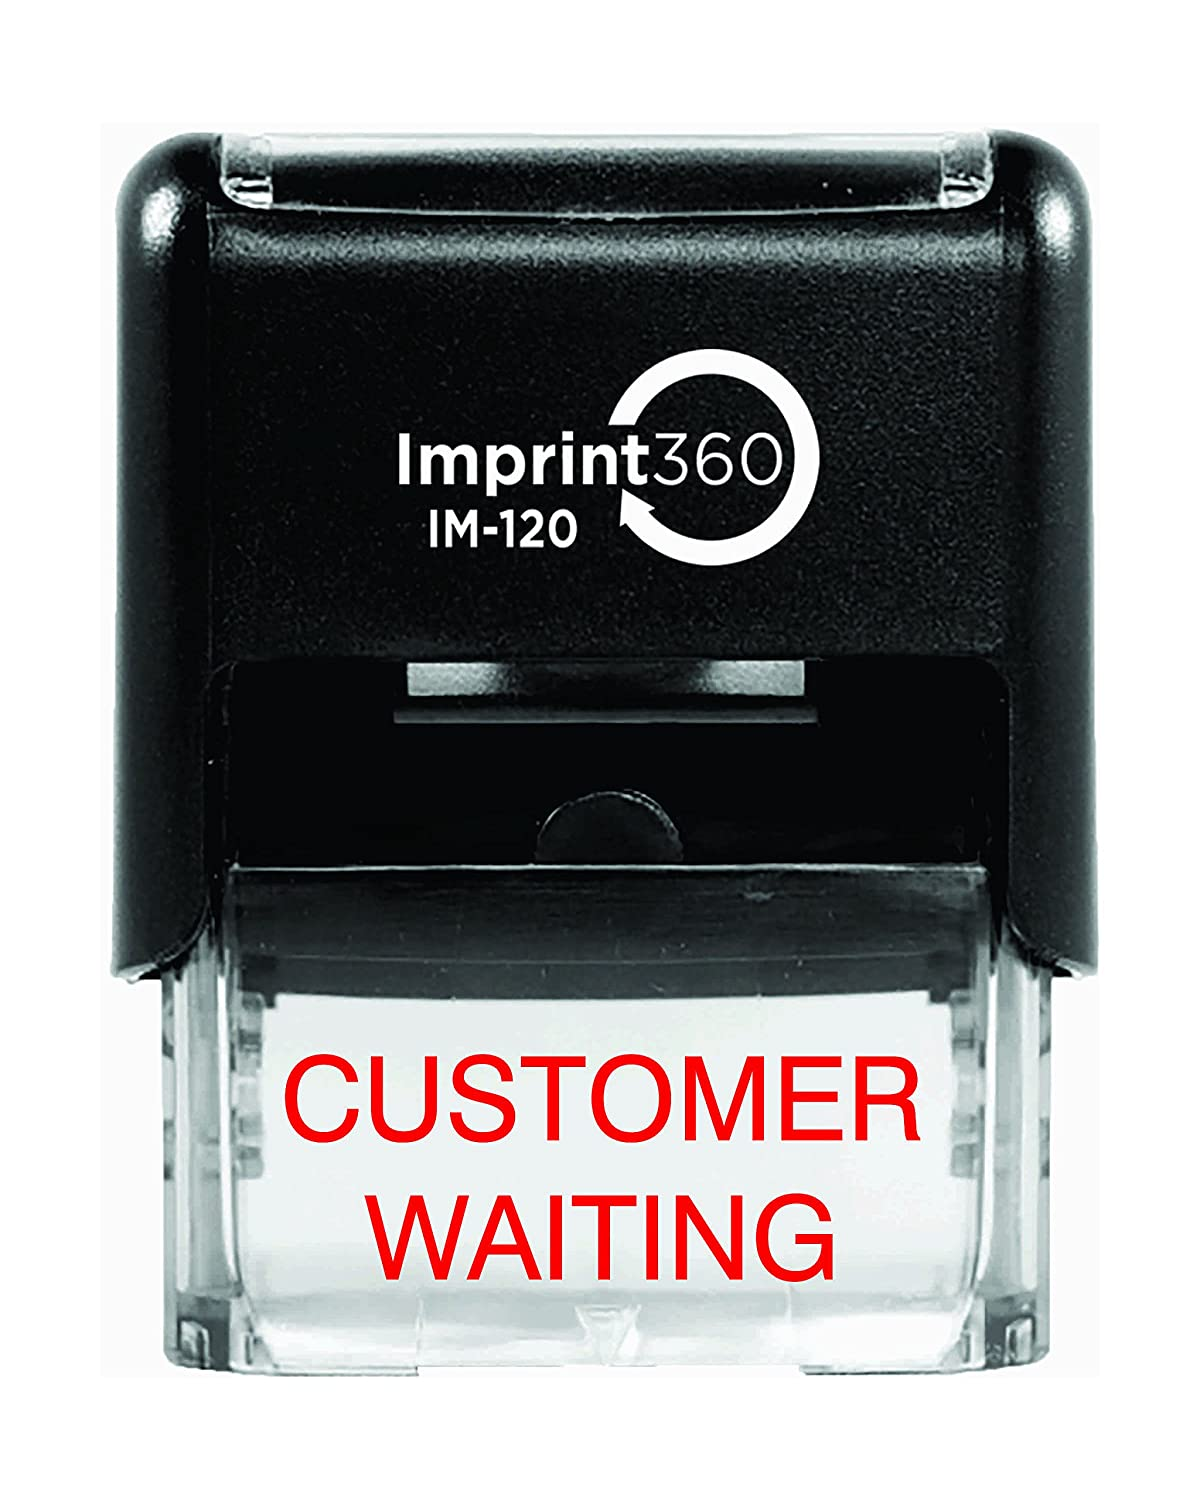 """Supply360 AS-IMP1056 - Customer Waiting, Heavy Duty Commerical Quality Self-Inking Rubber Stamp, Red Ink, 9/16"""" x 1-1/2"""" Impression Size, Laser Engraved for Clean, Precise Imprints"""